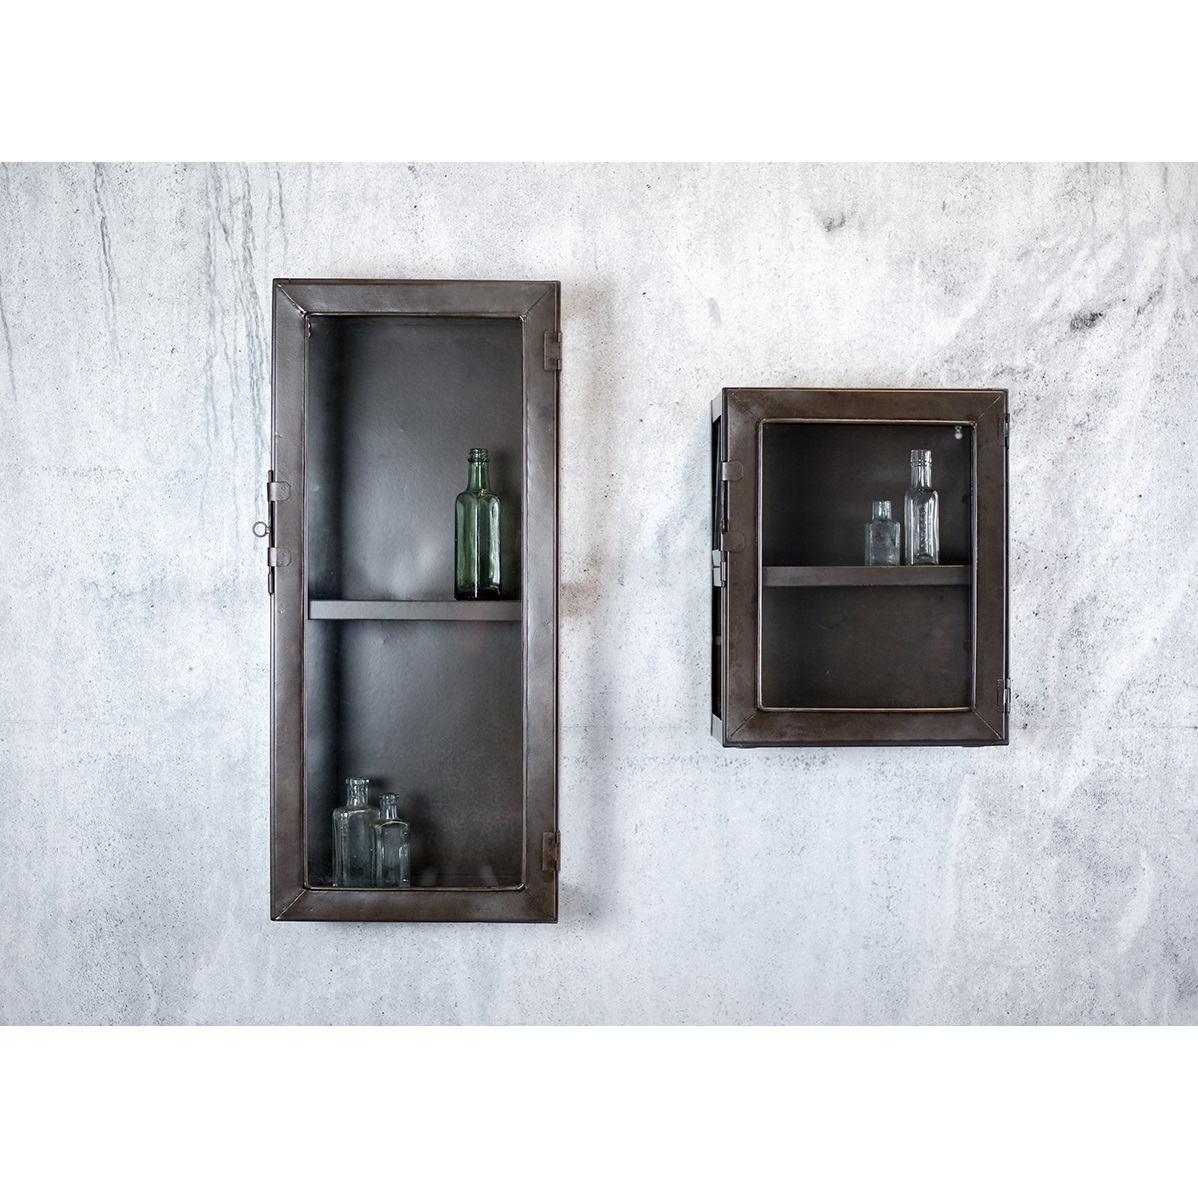 Small Kisari Wall Hanging Storage Cabinet With Glass Door